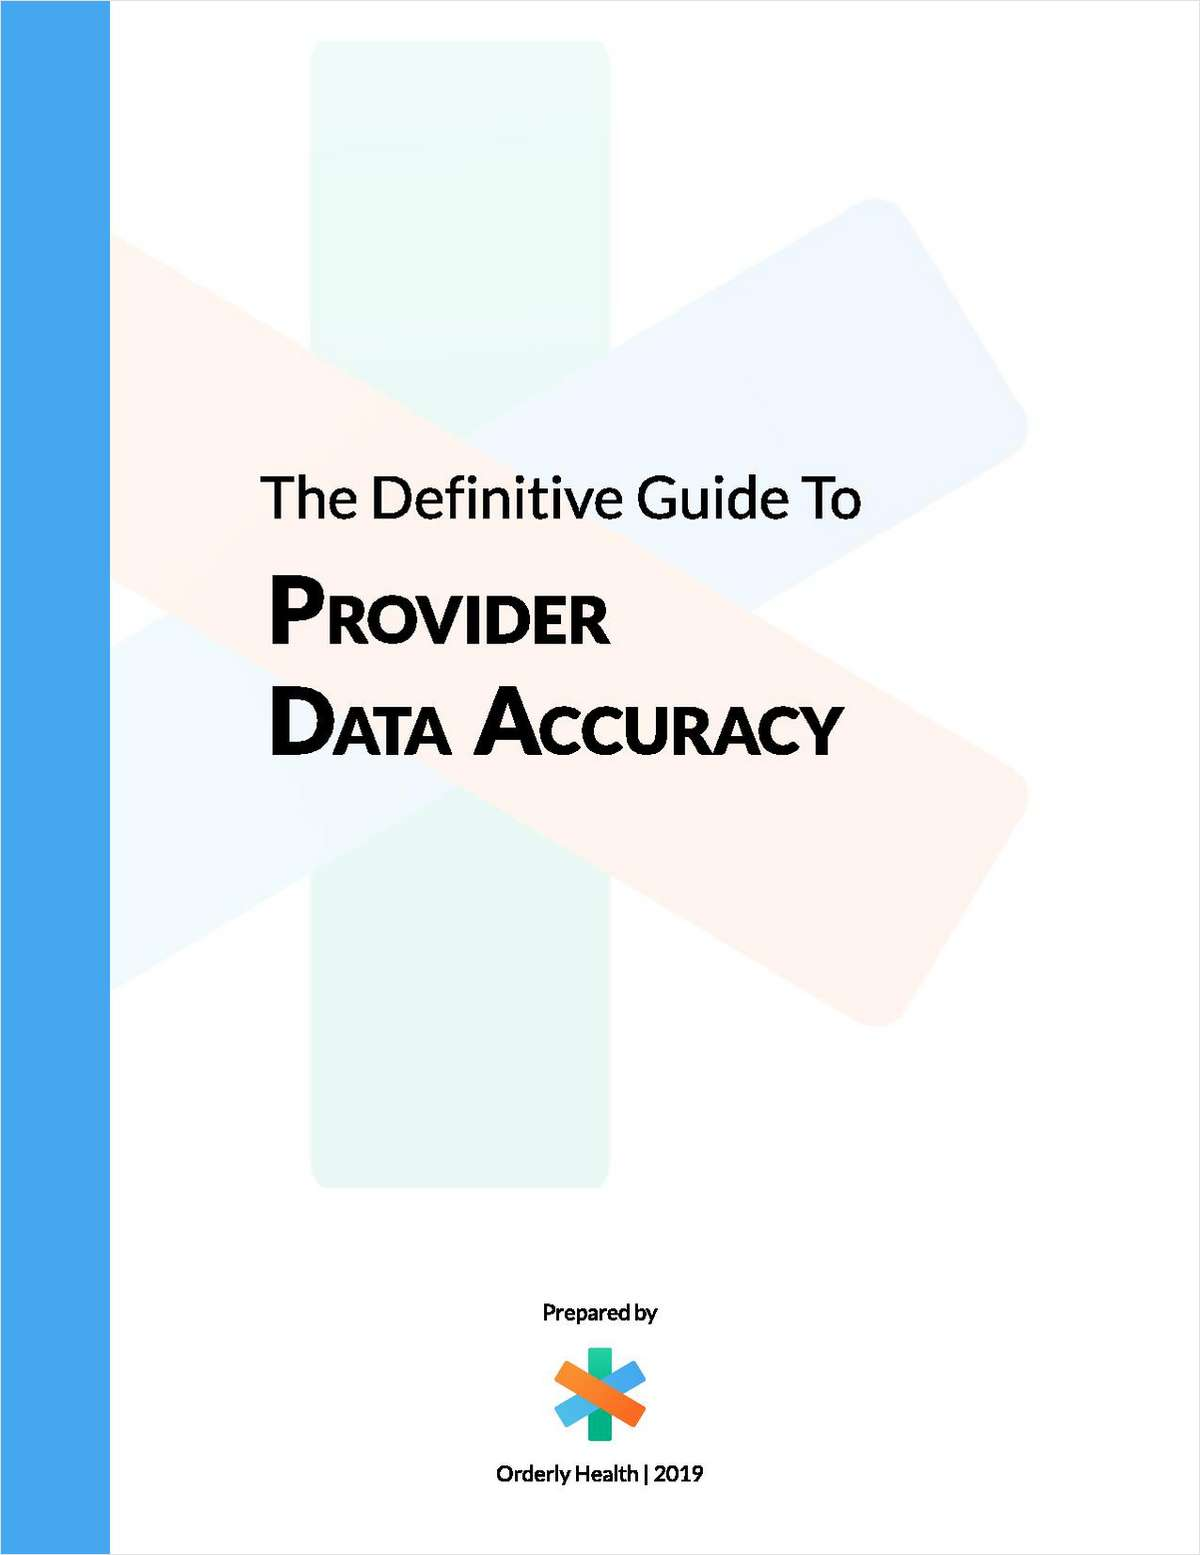 The Definitive Guide to Provider Data Accuracy